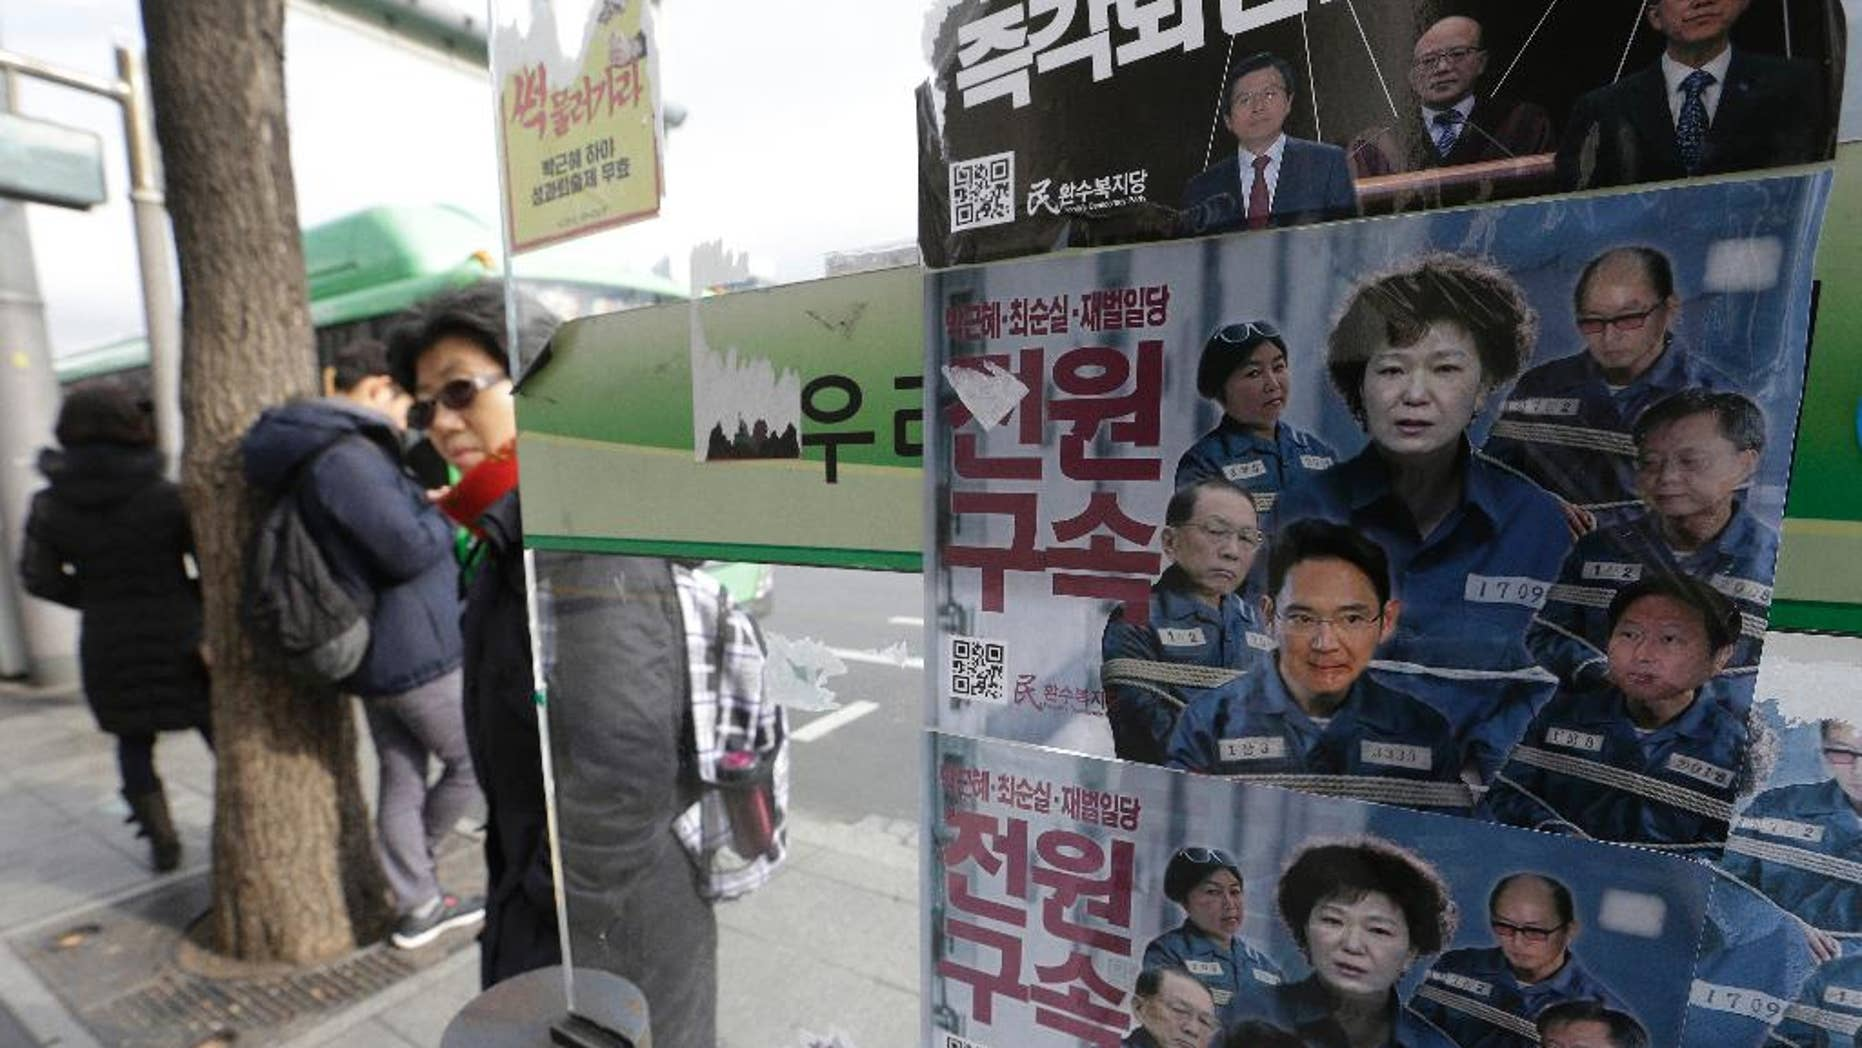 """FILE-In this Dec. 19, 2016, file photo, posters showing portraits of impeached South Korea's President Park Geun-hye, center, her aides and business men are displayed at a bus station in Seoul, South Korea. Prosecutors will not be allowed to search South Korea's presidential compound as part of their investigation of the massive corruption scandal that toppled Park from power, the president's office said Thursday, Feb. 2, 2017. The letter read """"Arrest."""" (AP Photo/Ahn Young-joon, File)"""